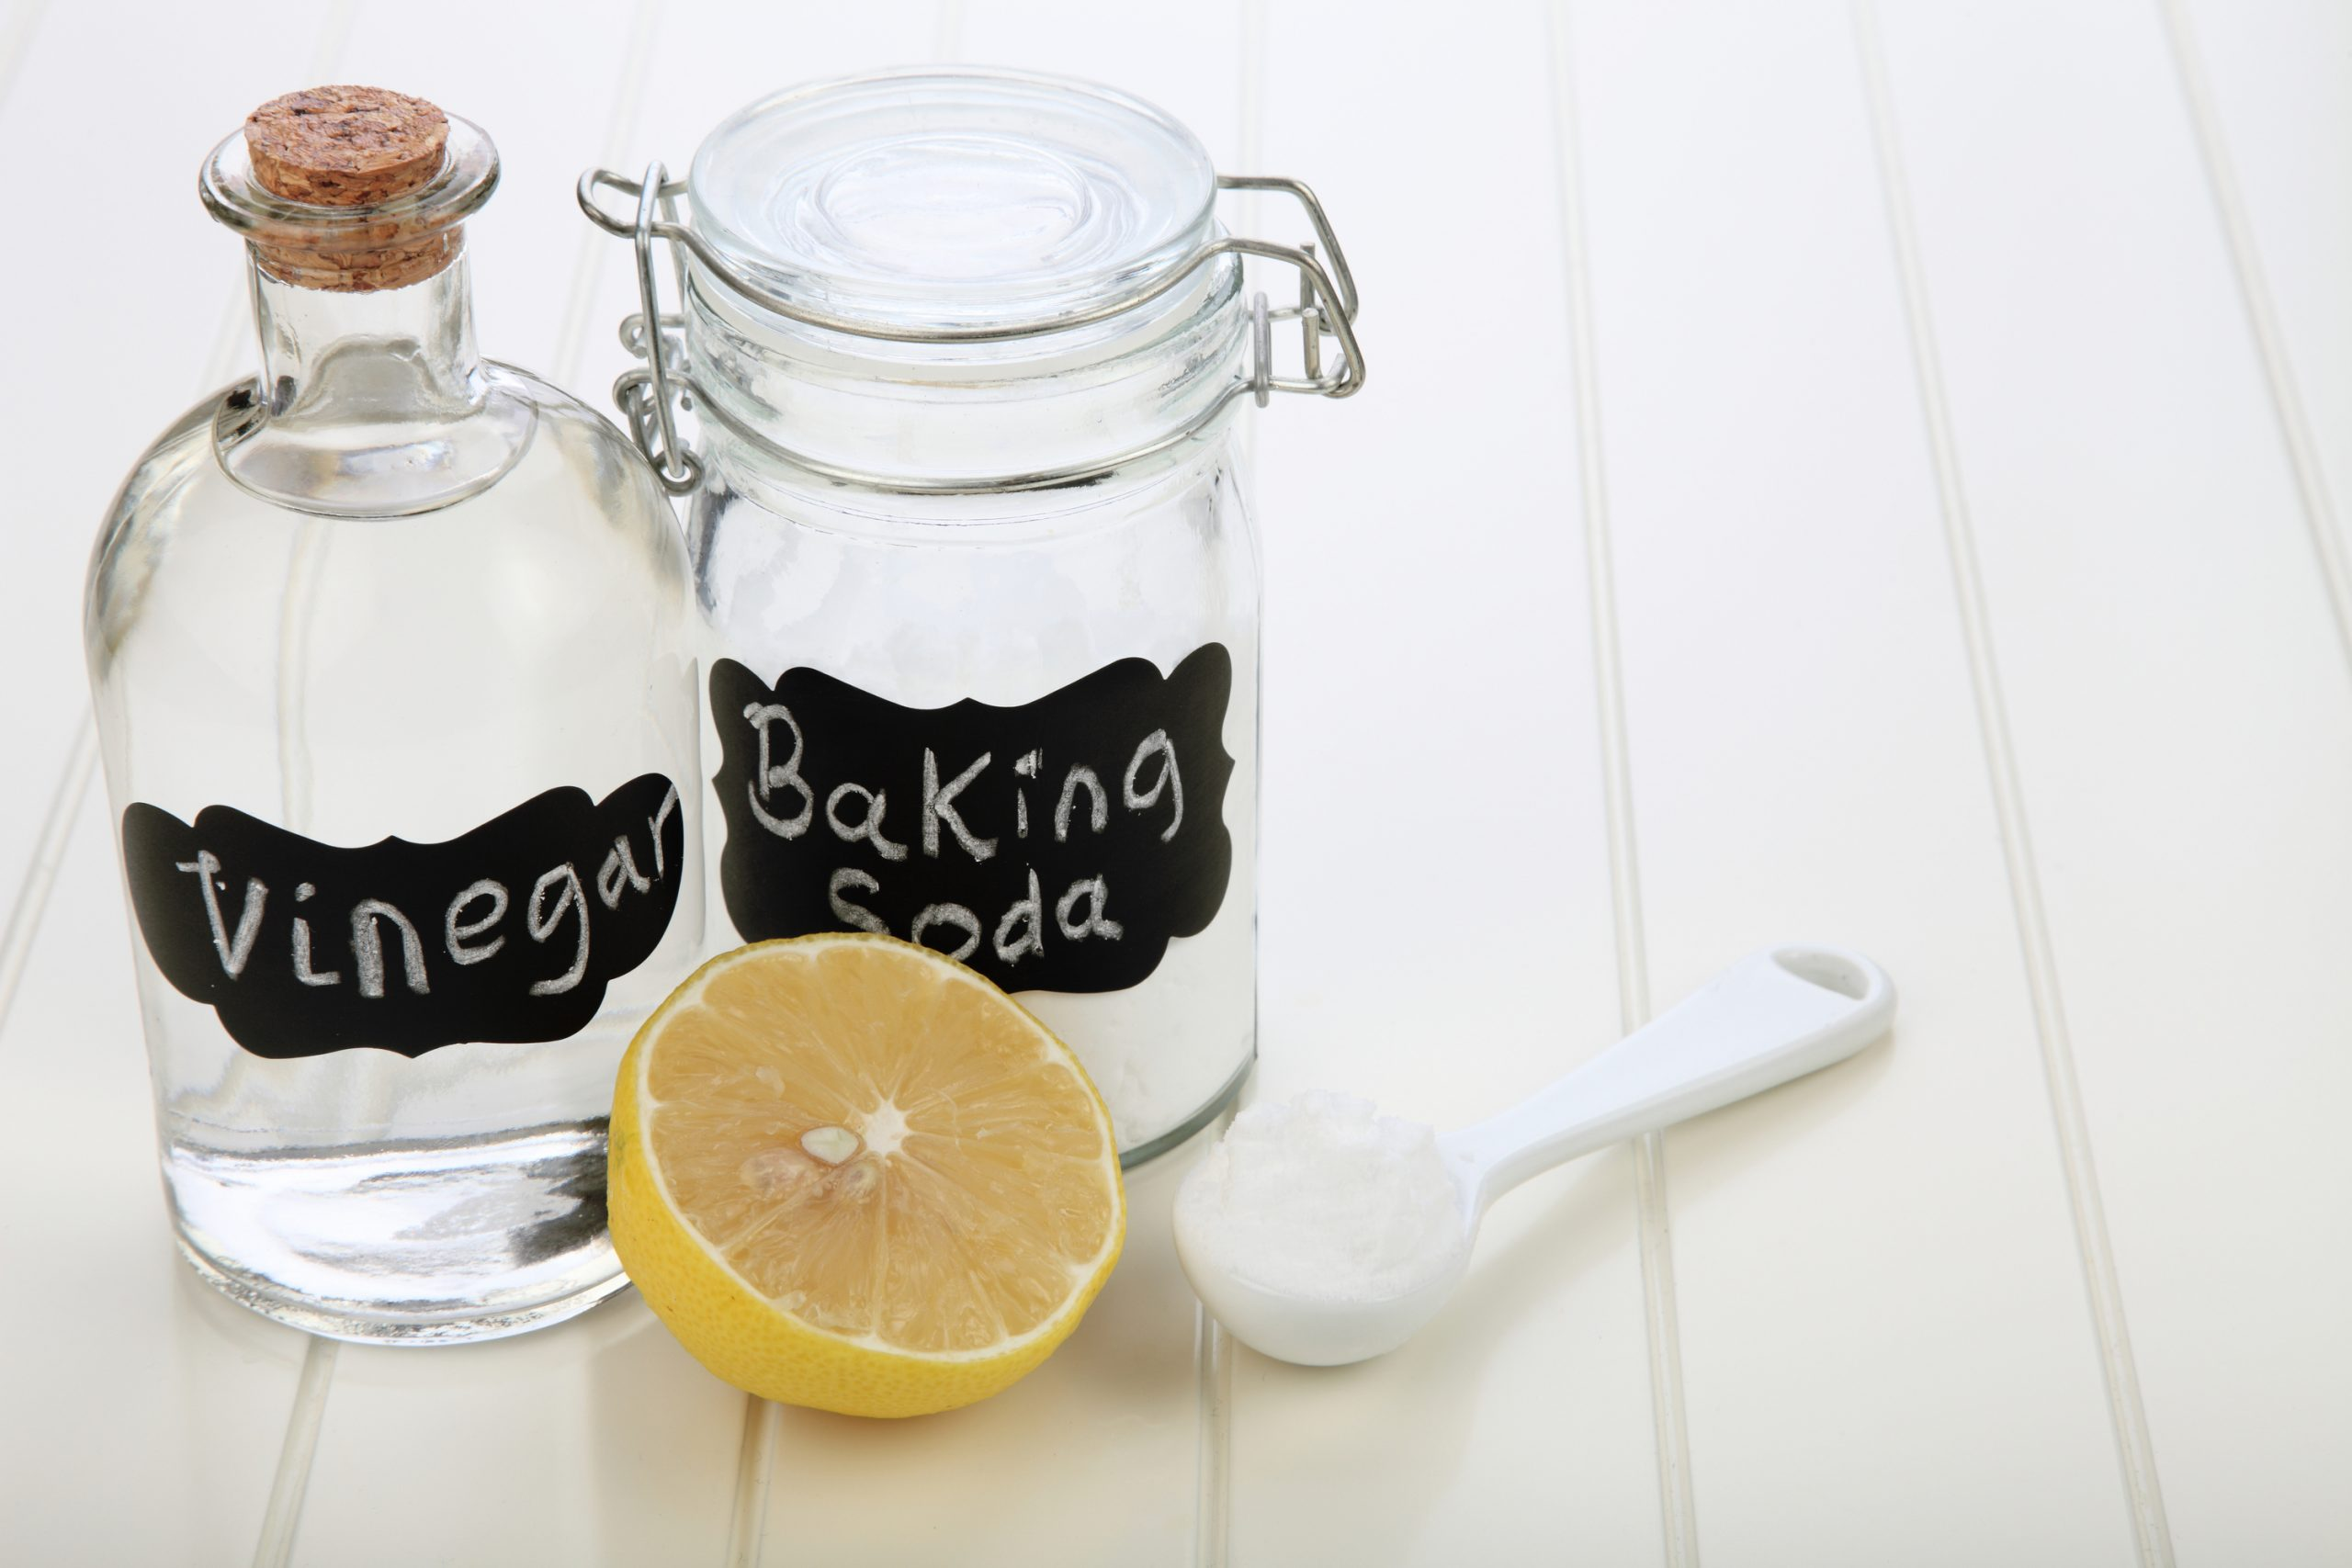 Do you try to use natural cleaning products as much as possible? Do you know that vinegar alone can clean your toilet? See what else you can clean with vinegar.